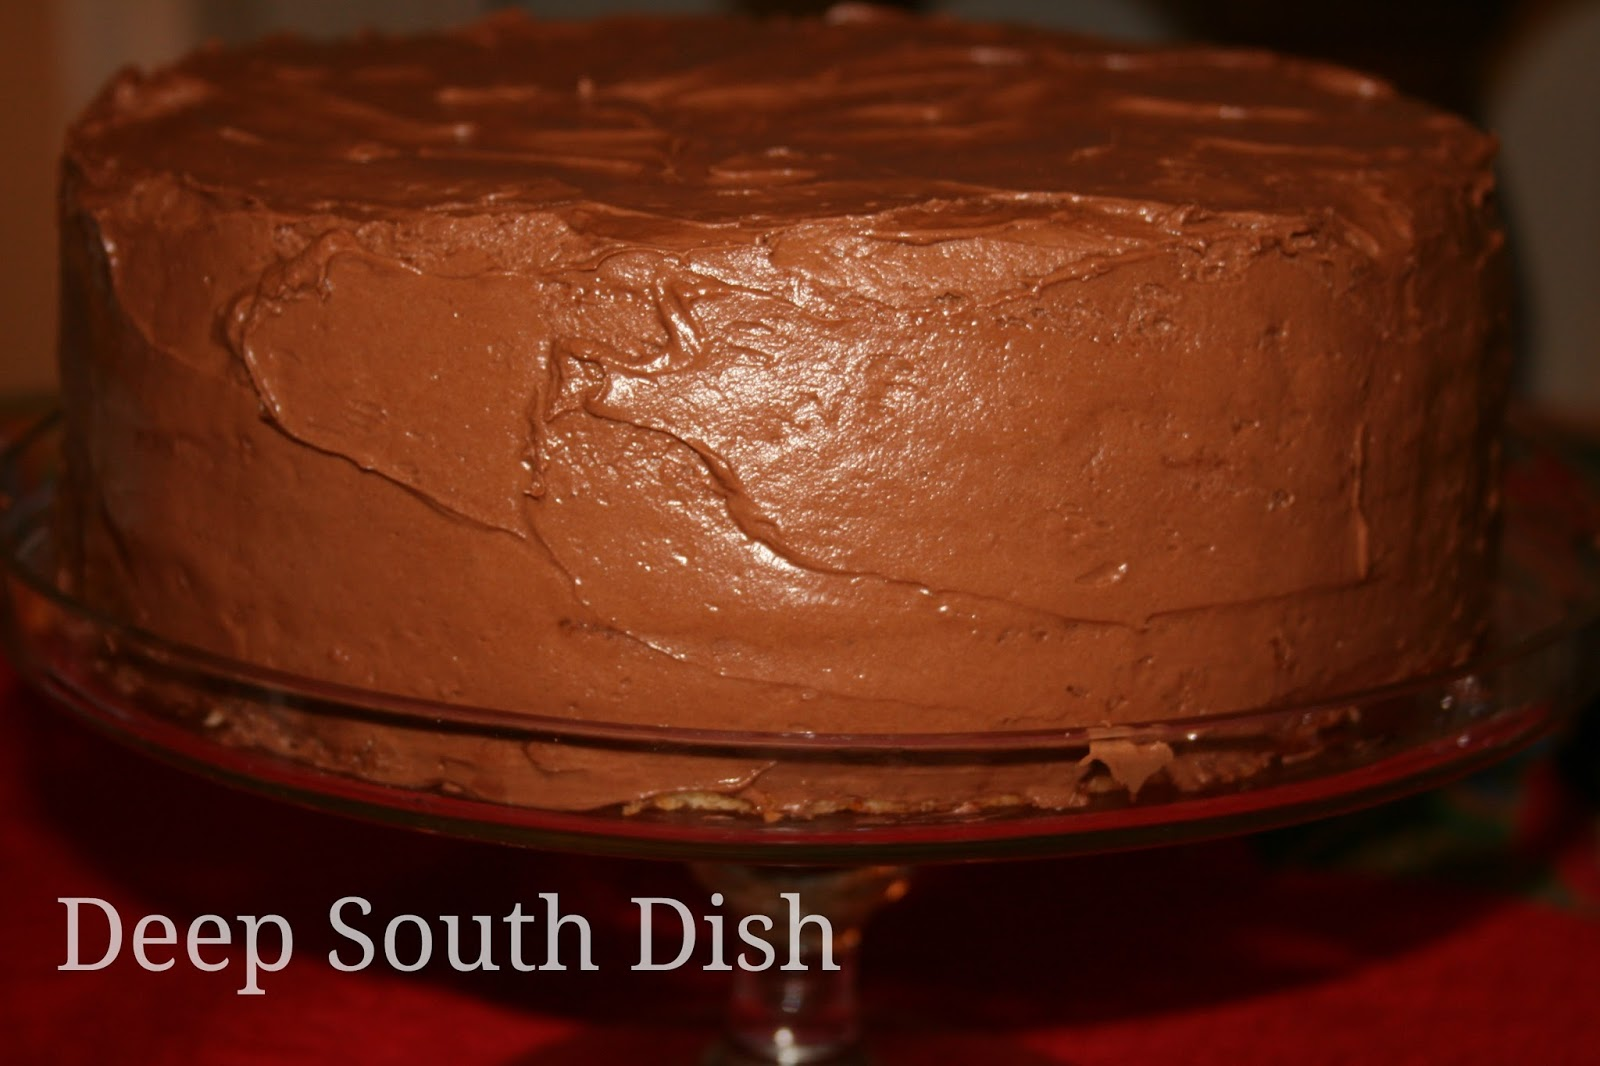 Deep South Dish Basic 1234 Yellow Birthday Cake with Chocolate Icing